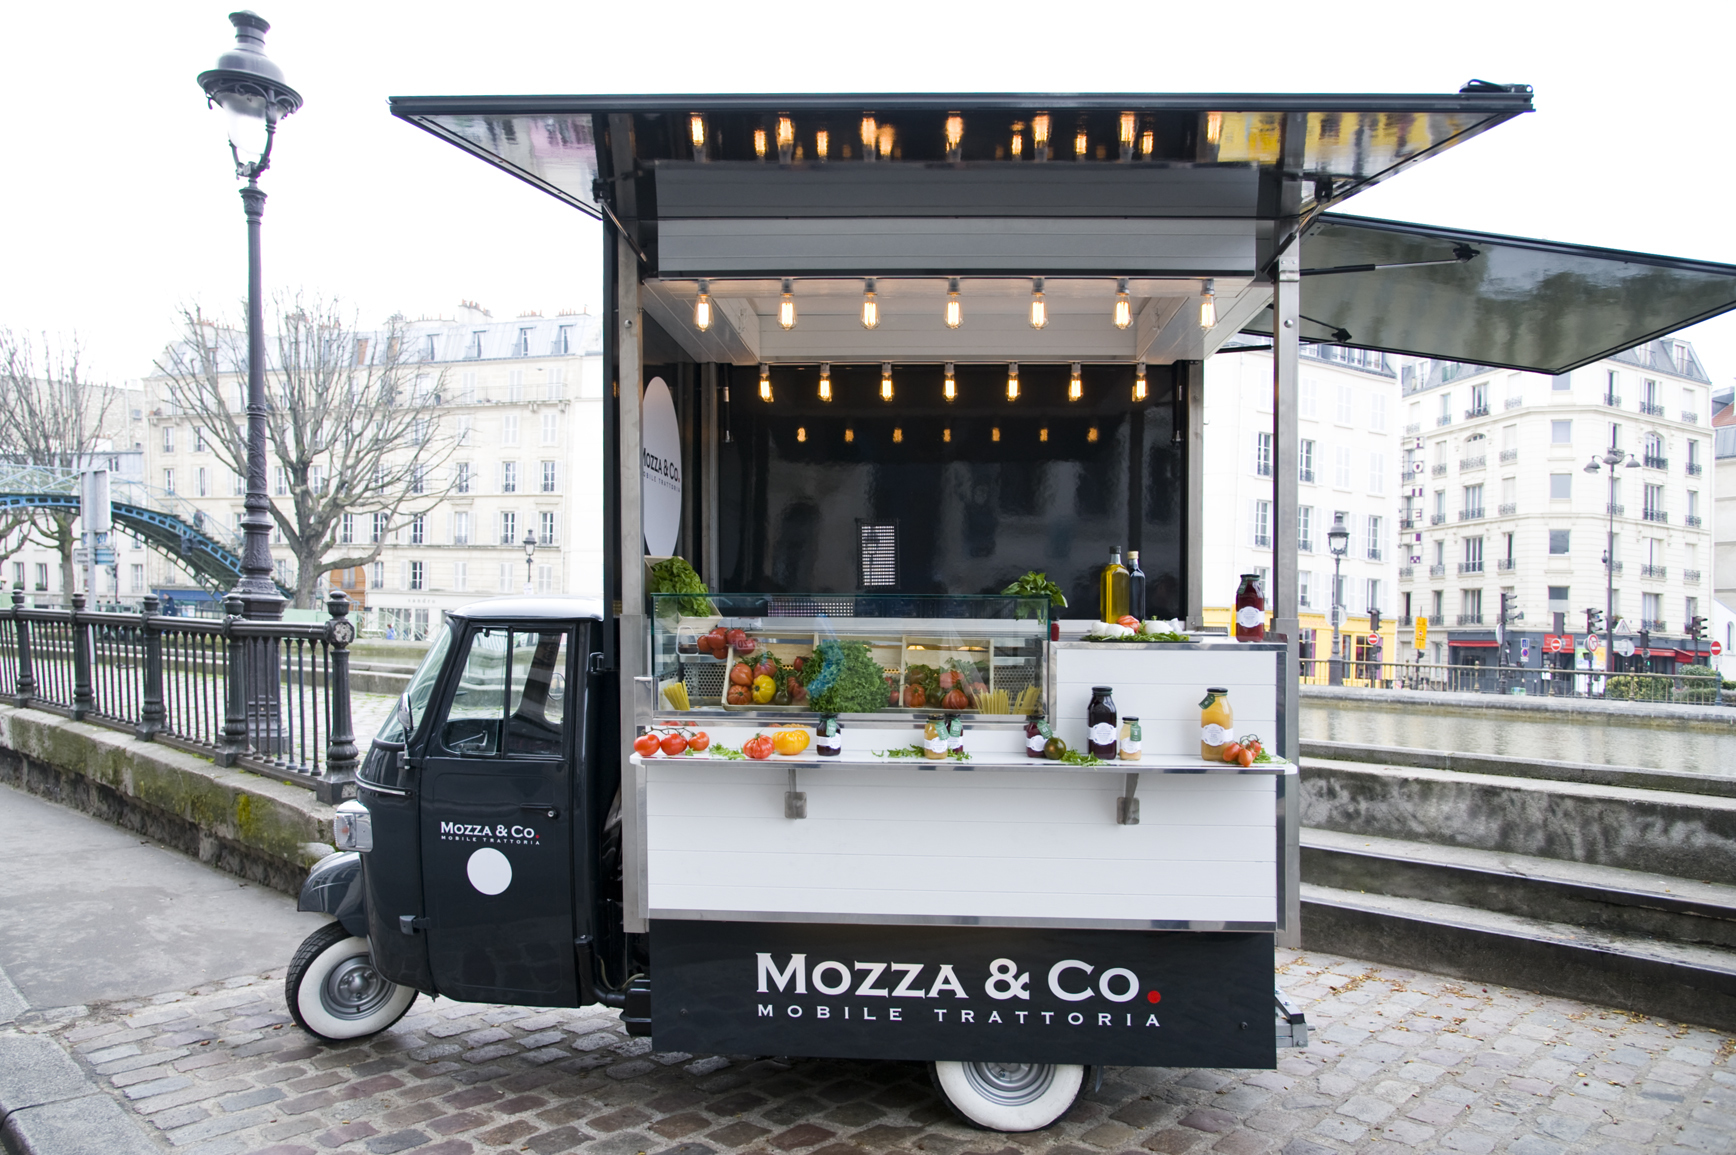 Chez Mozza & Co